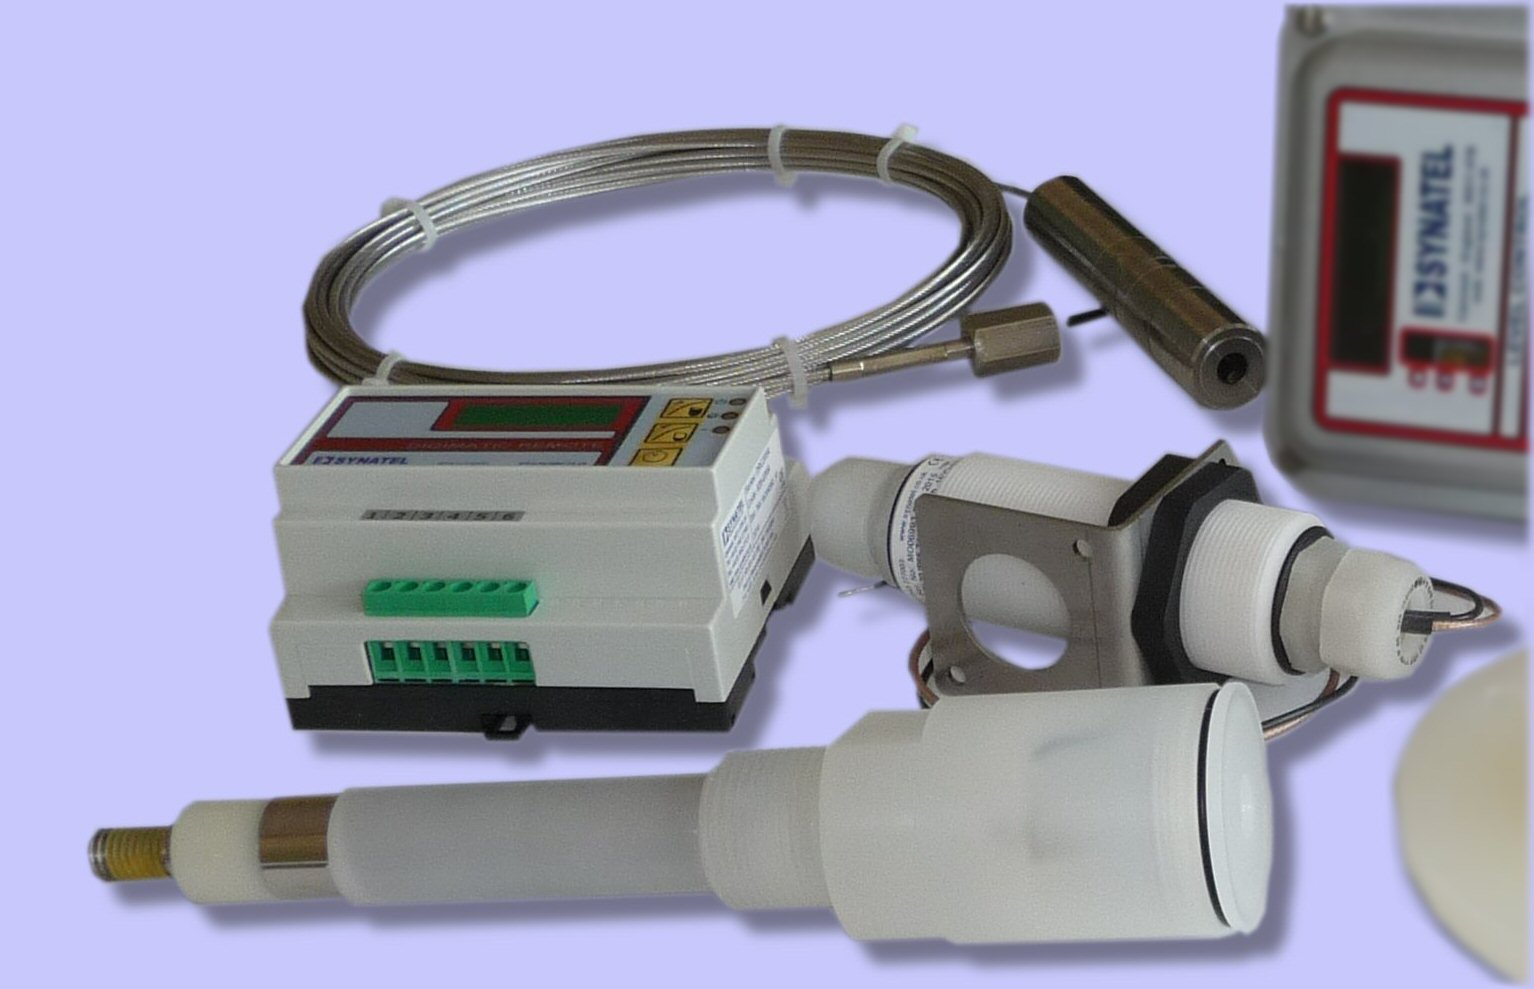 DMR2 remote digimatic probe